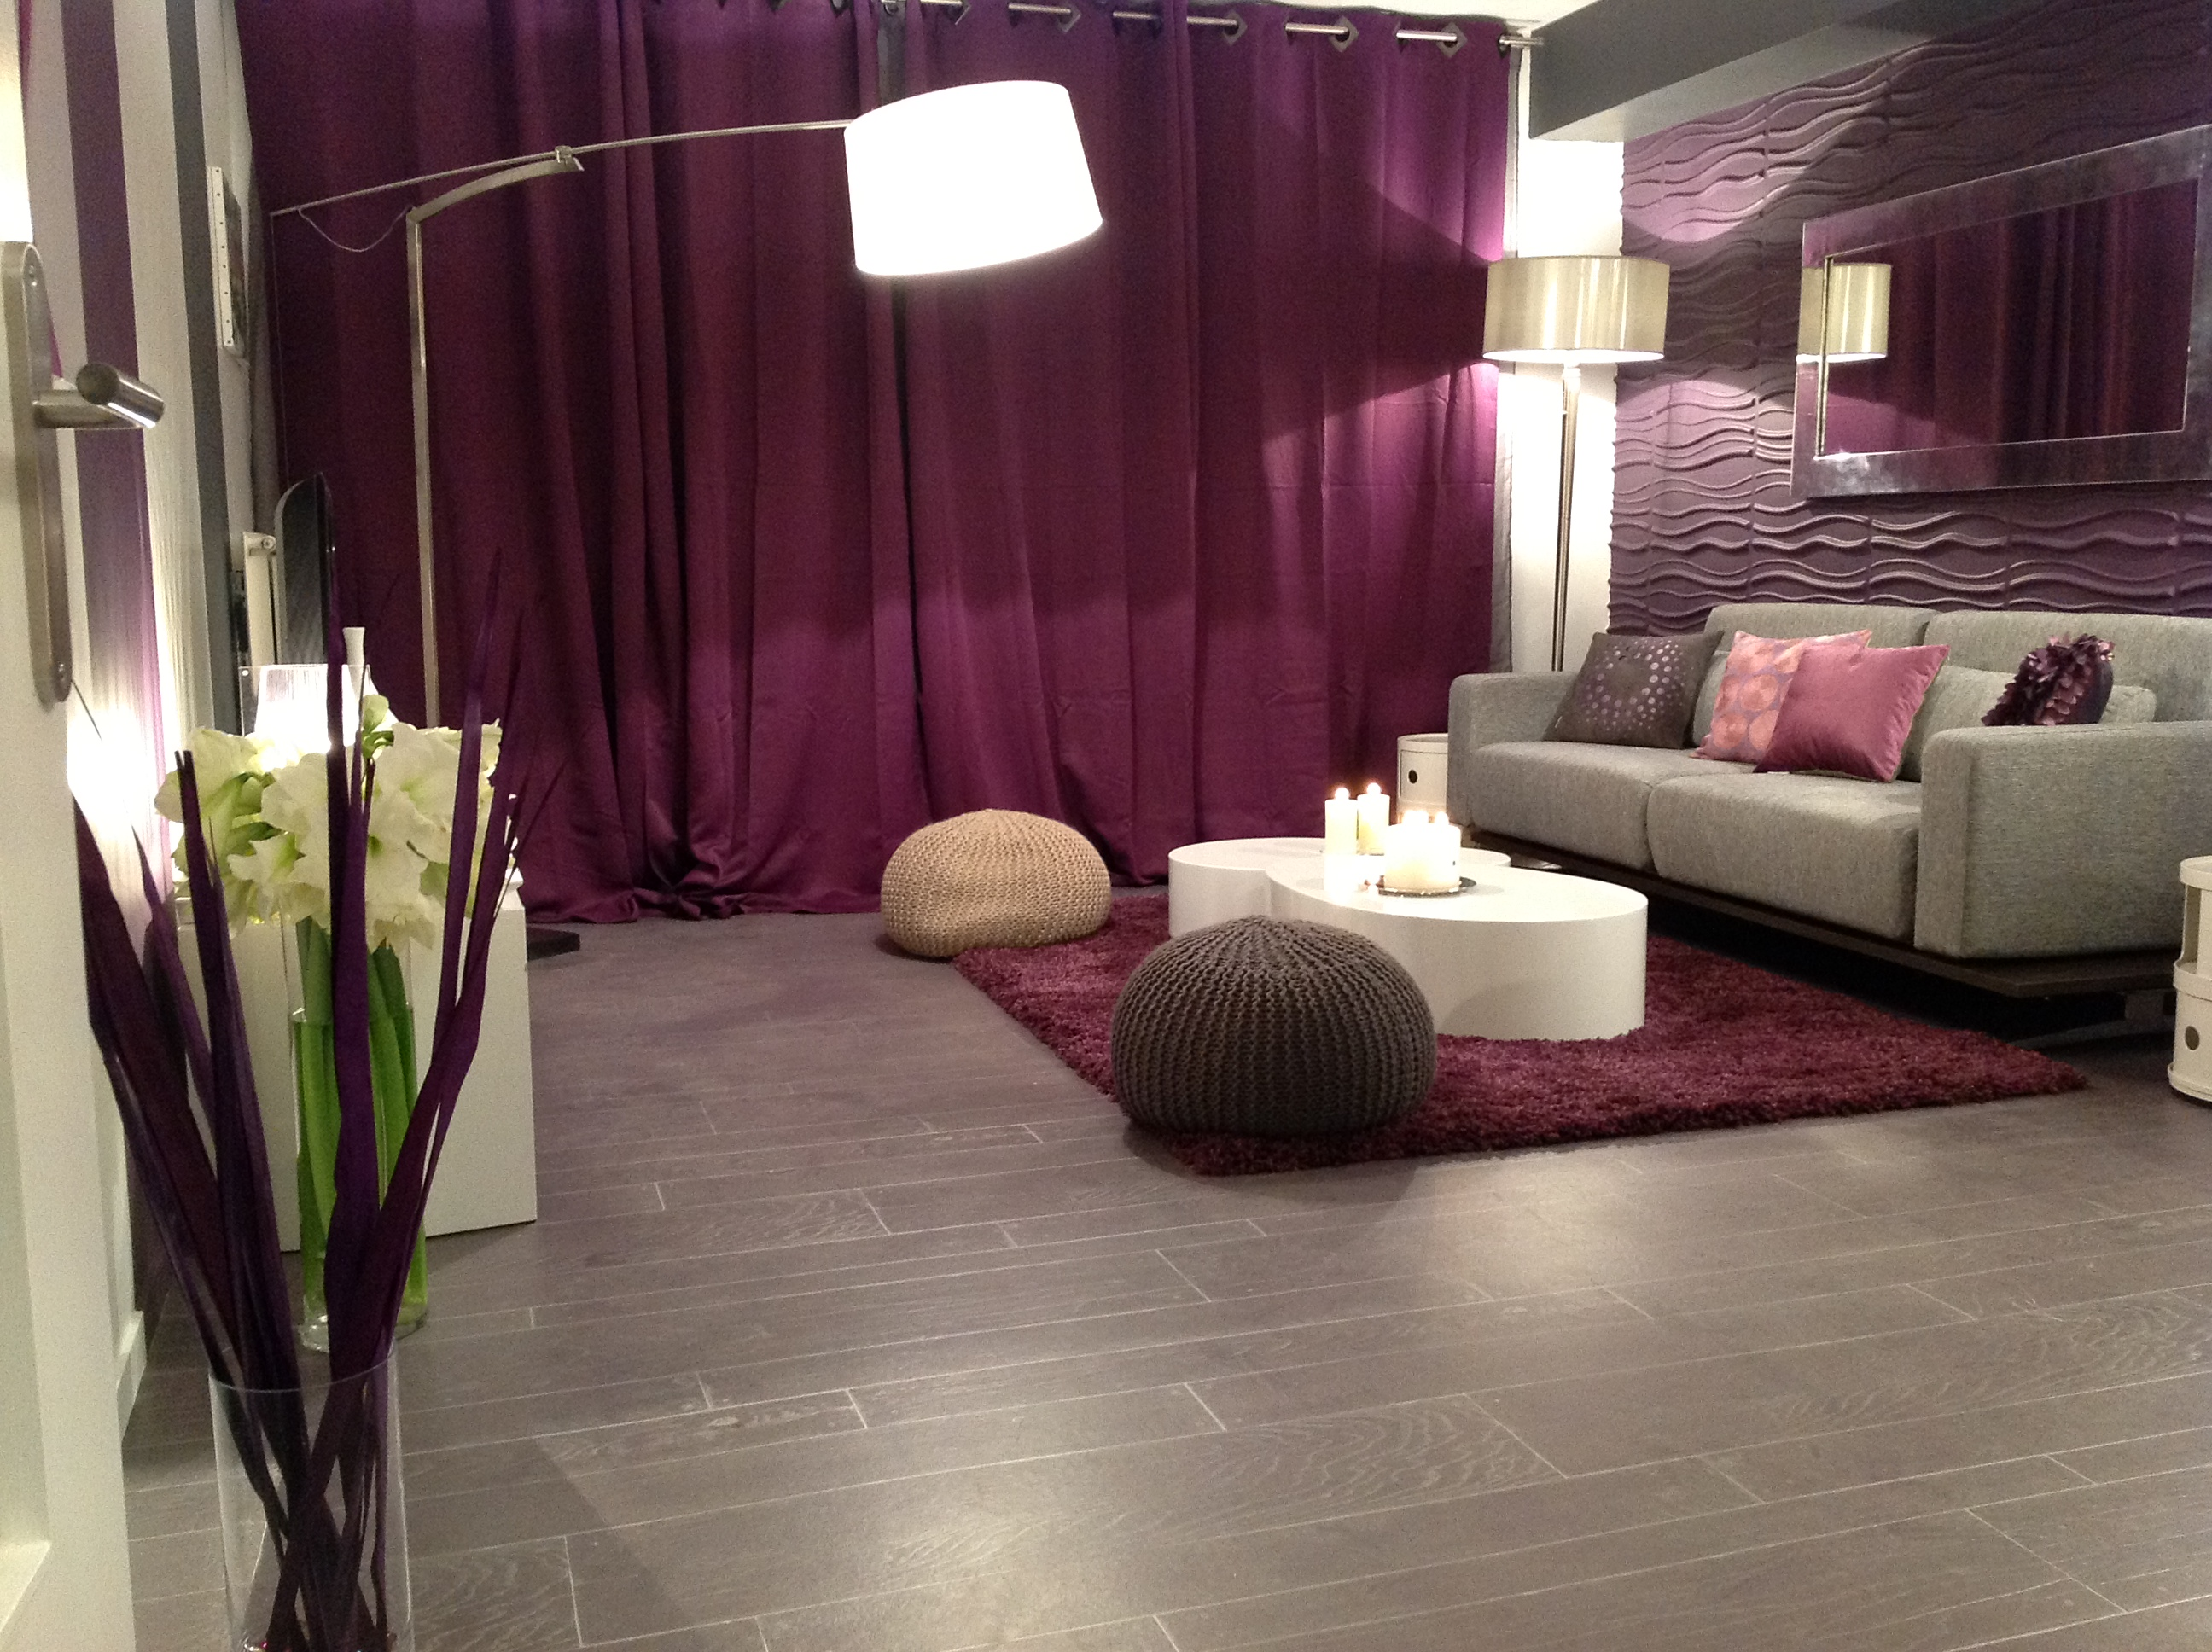 D coration salon prune et gris exemples d 39 am nagements for Decoration salon prune